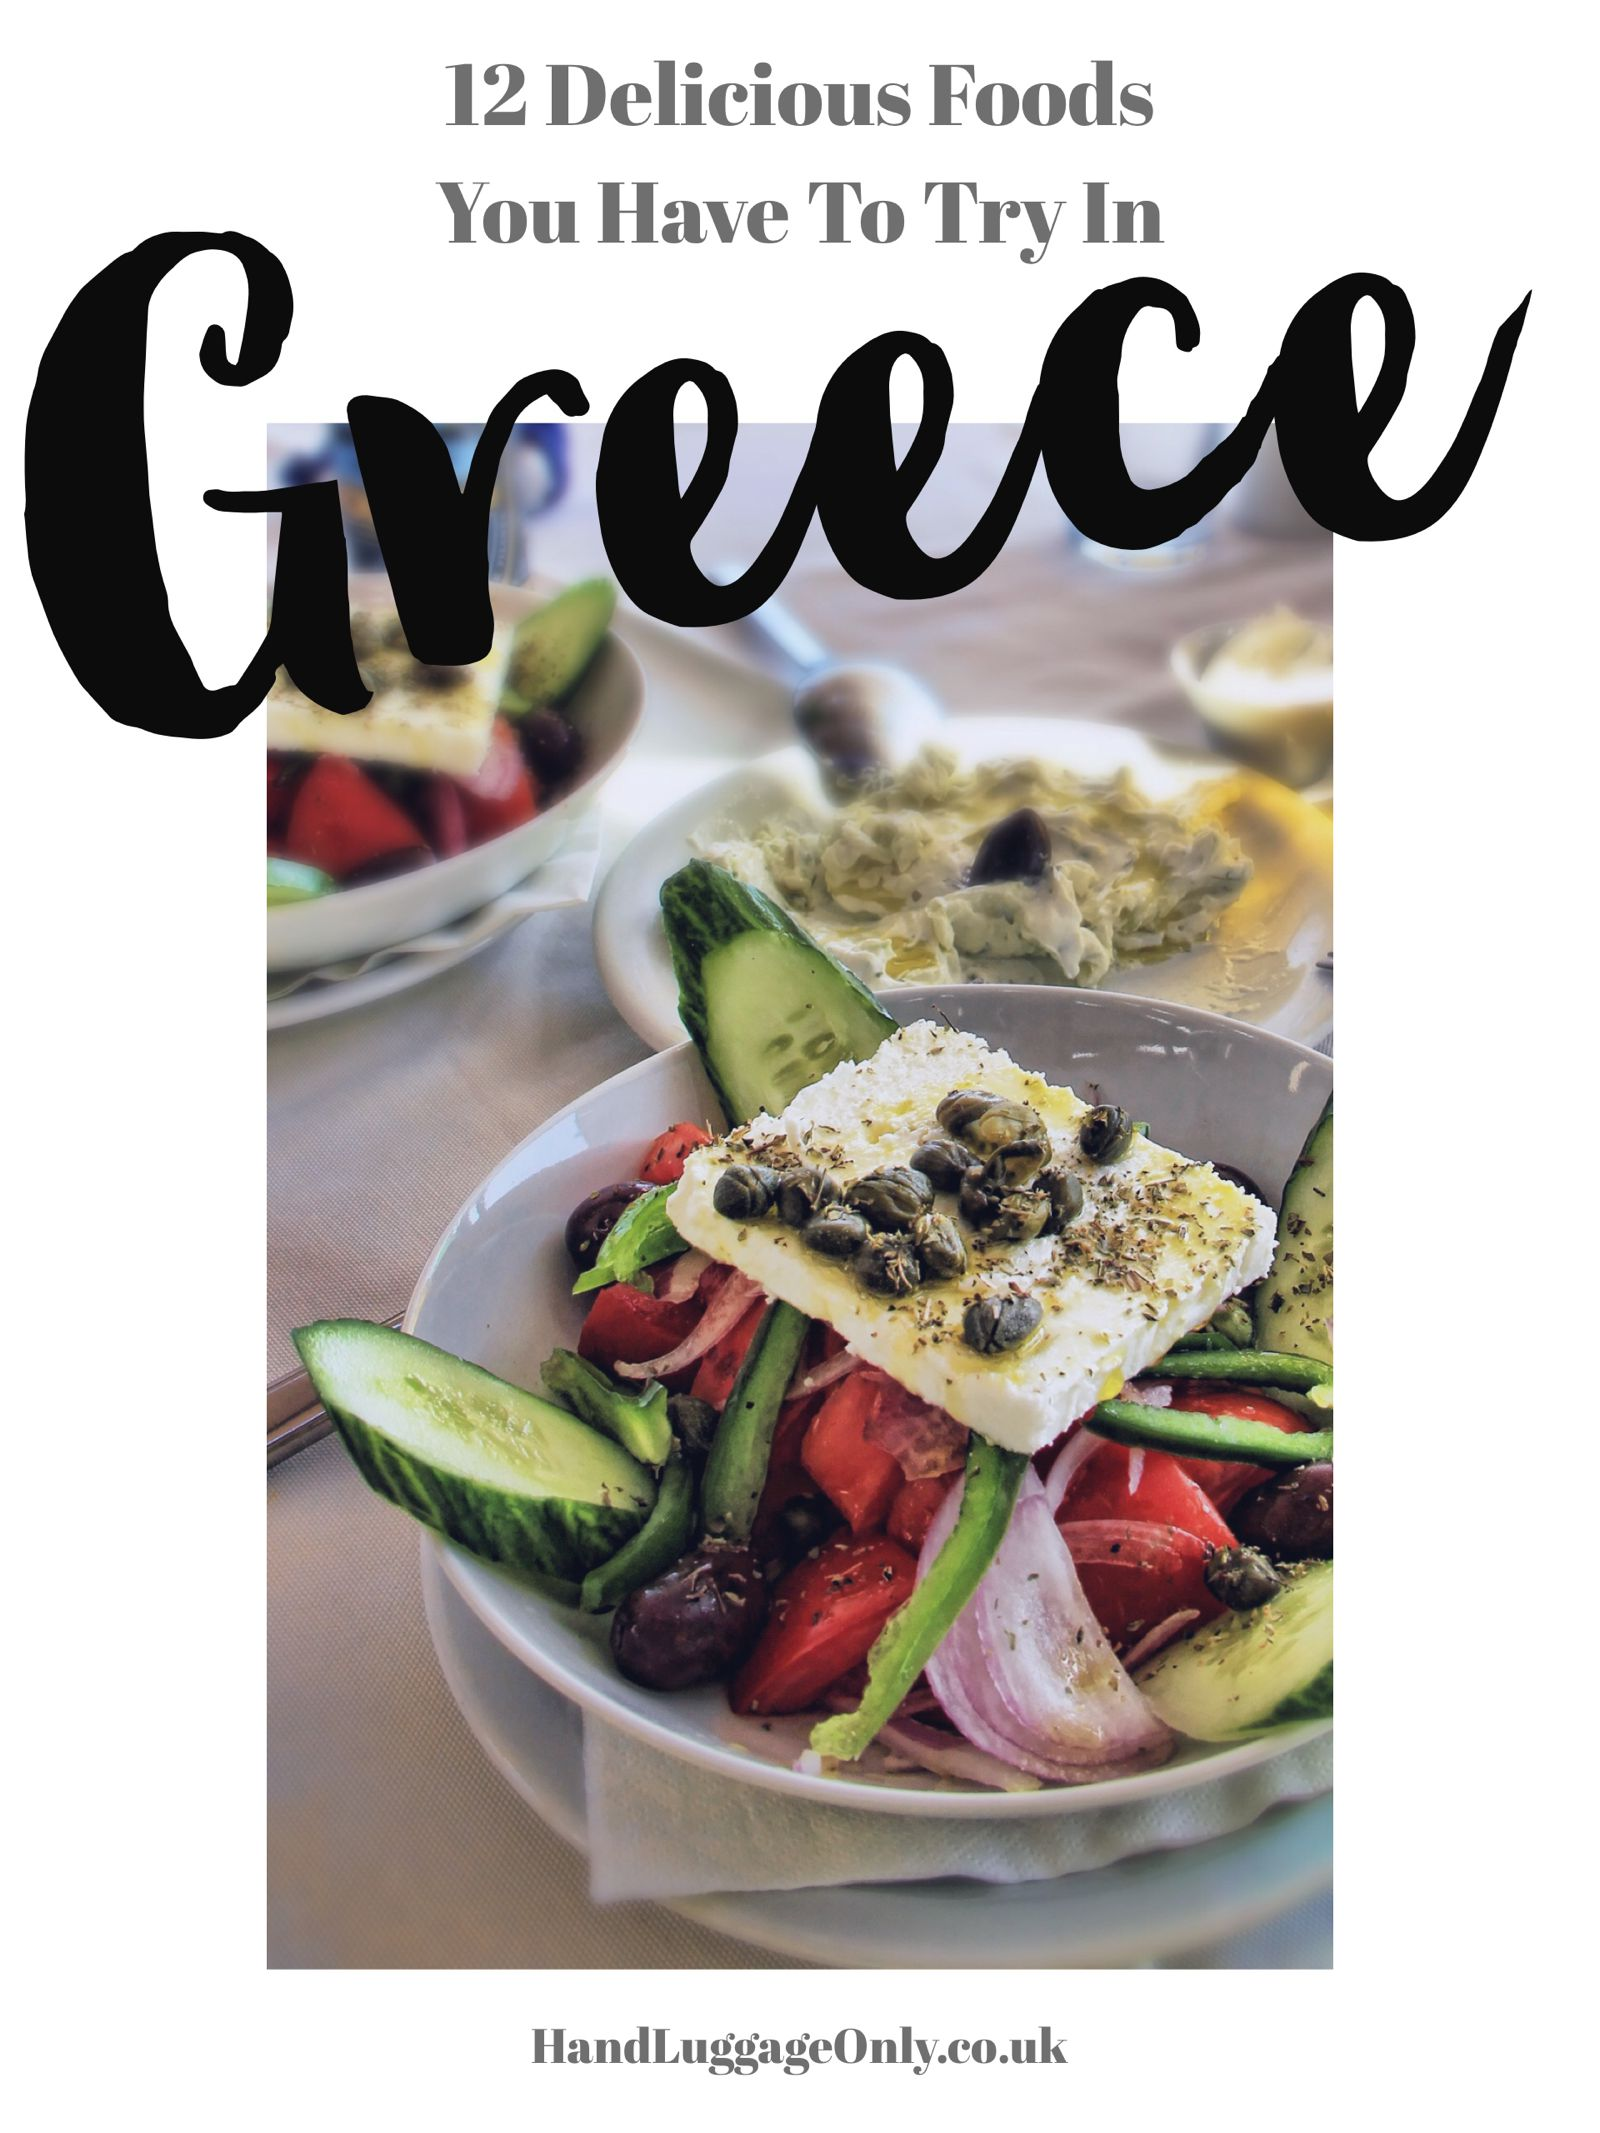 12 Delicious Foods You Have To Eat In Greece (14)